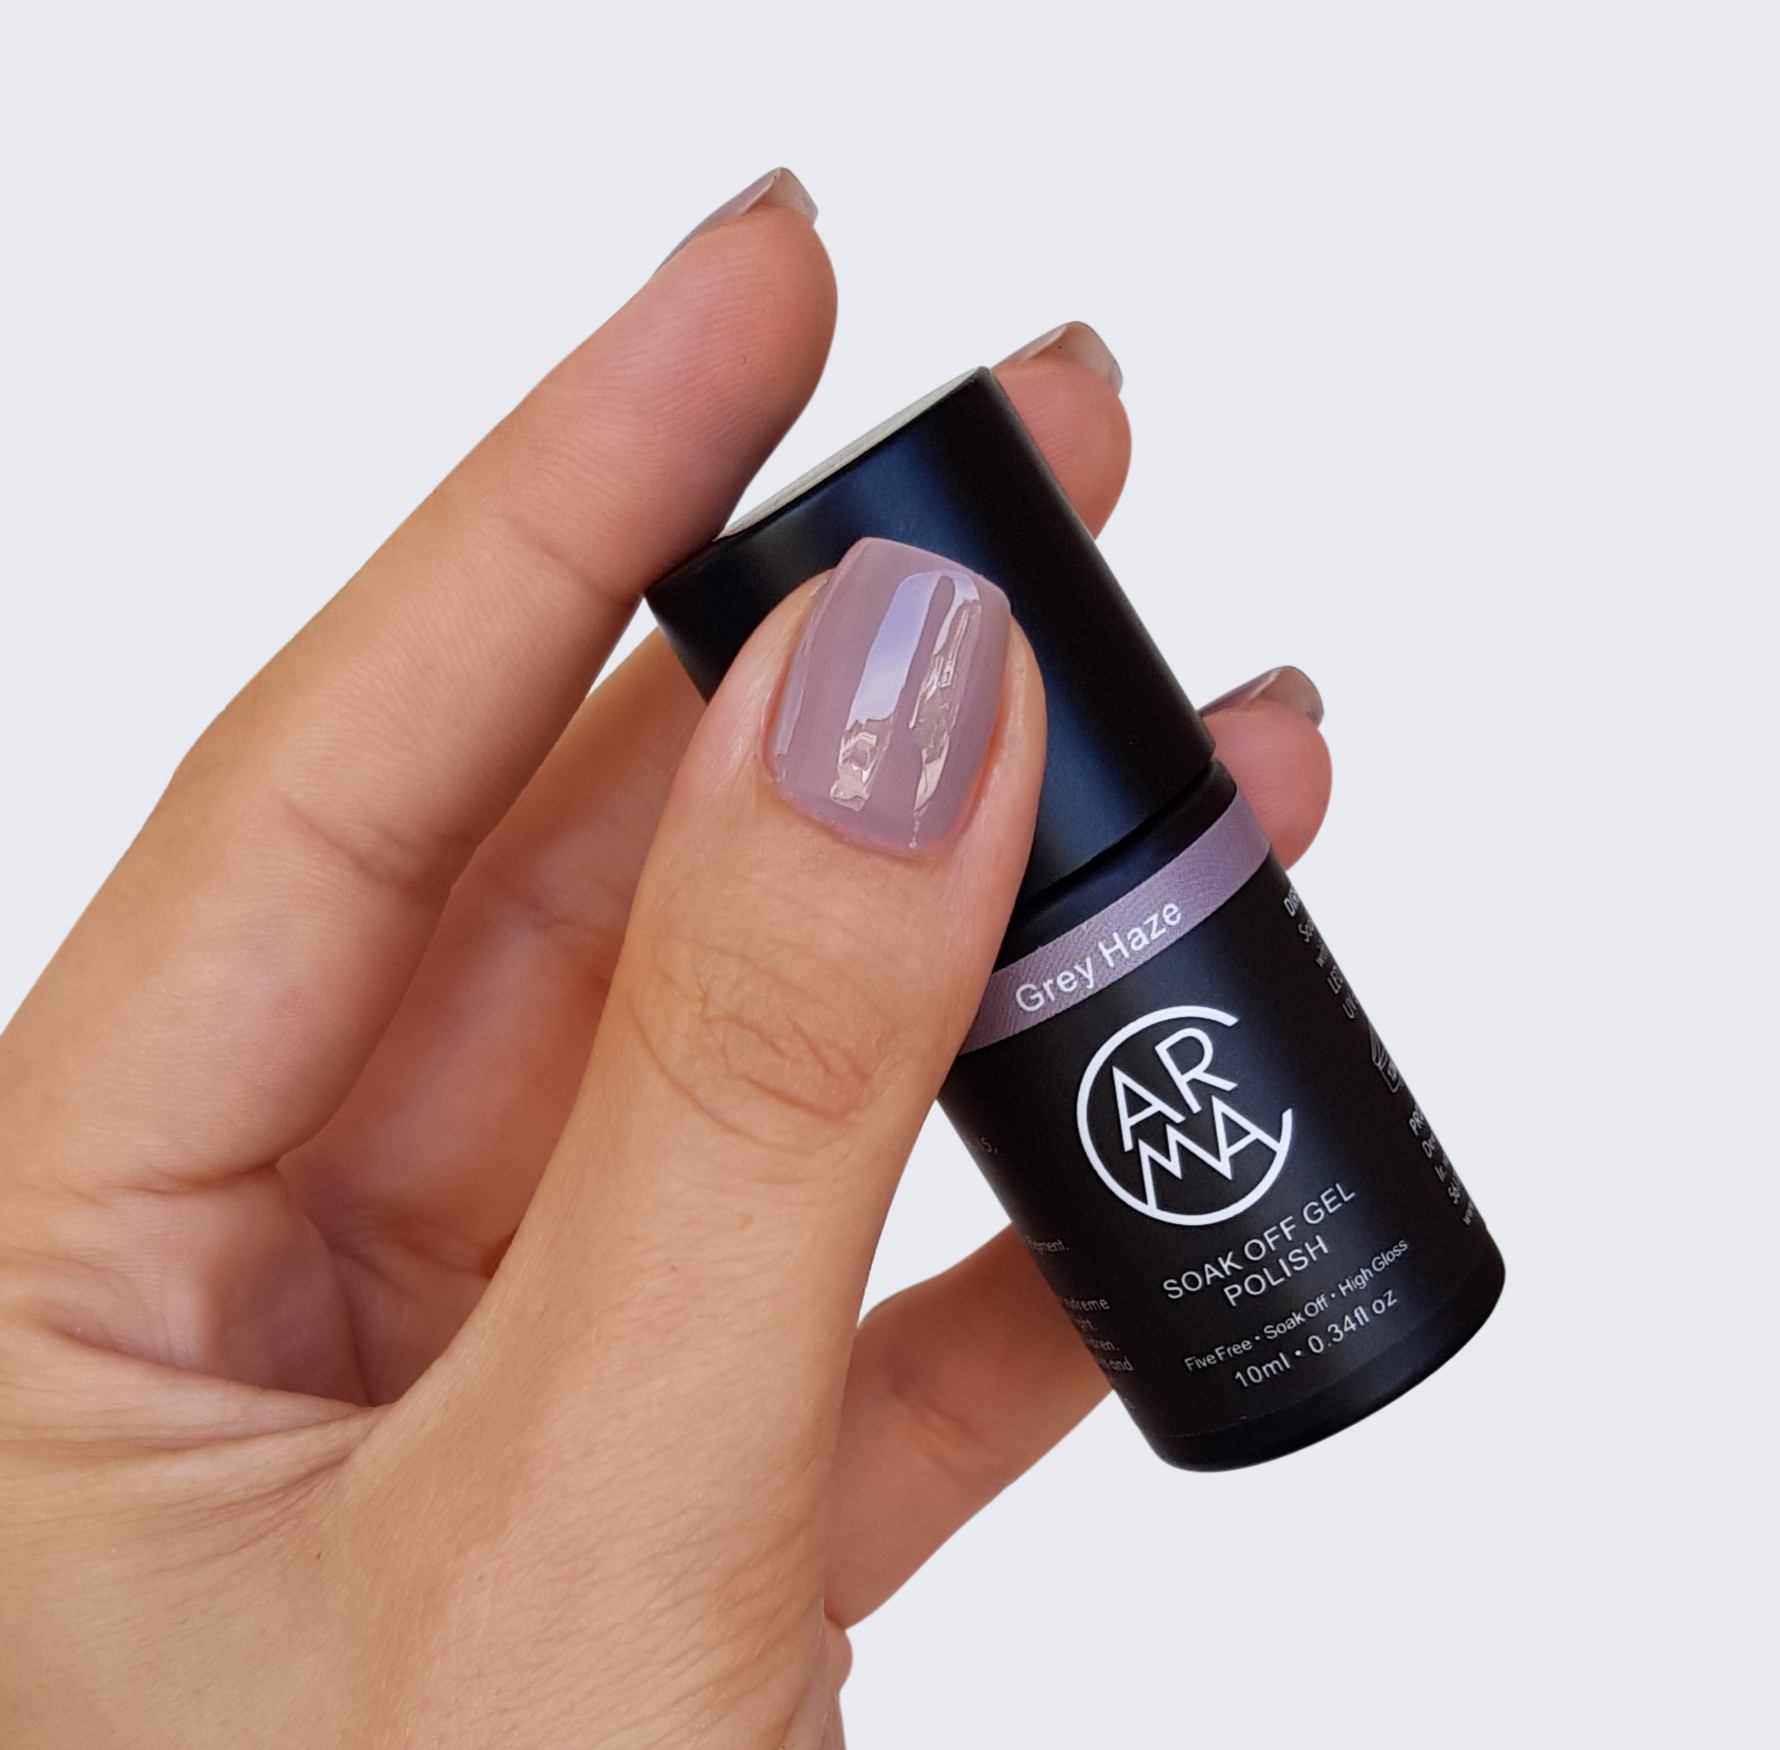 CARMA Grey Haze Soak Off Gel Polish